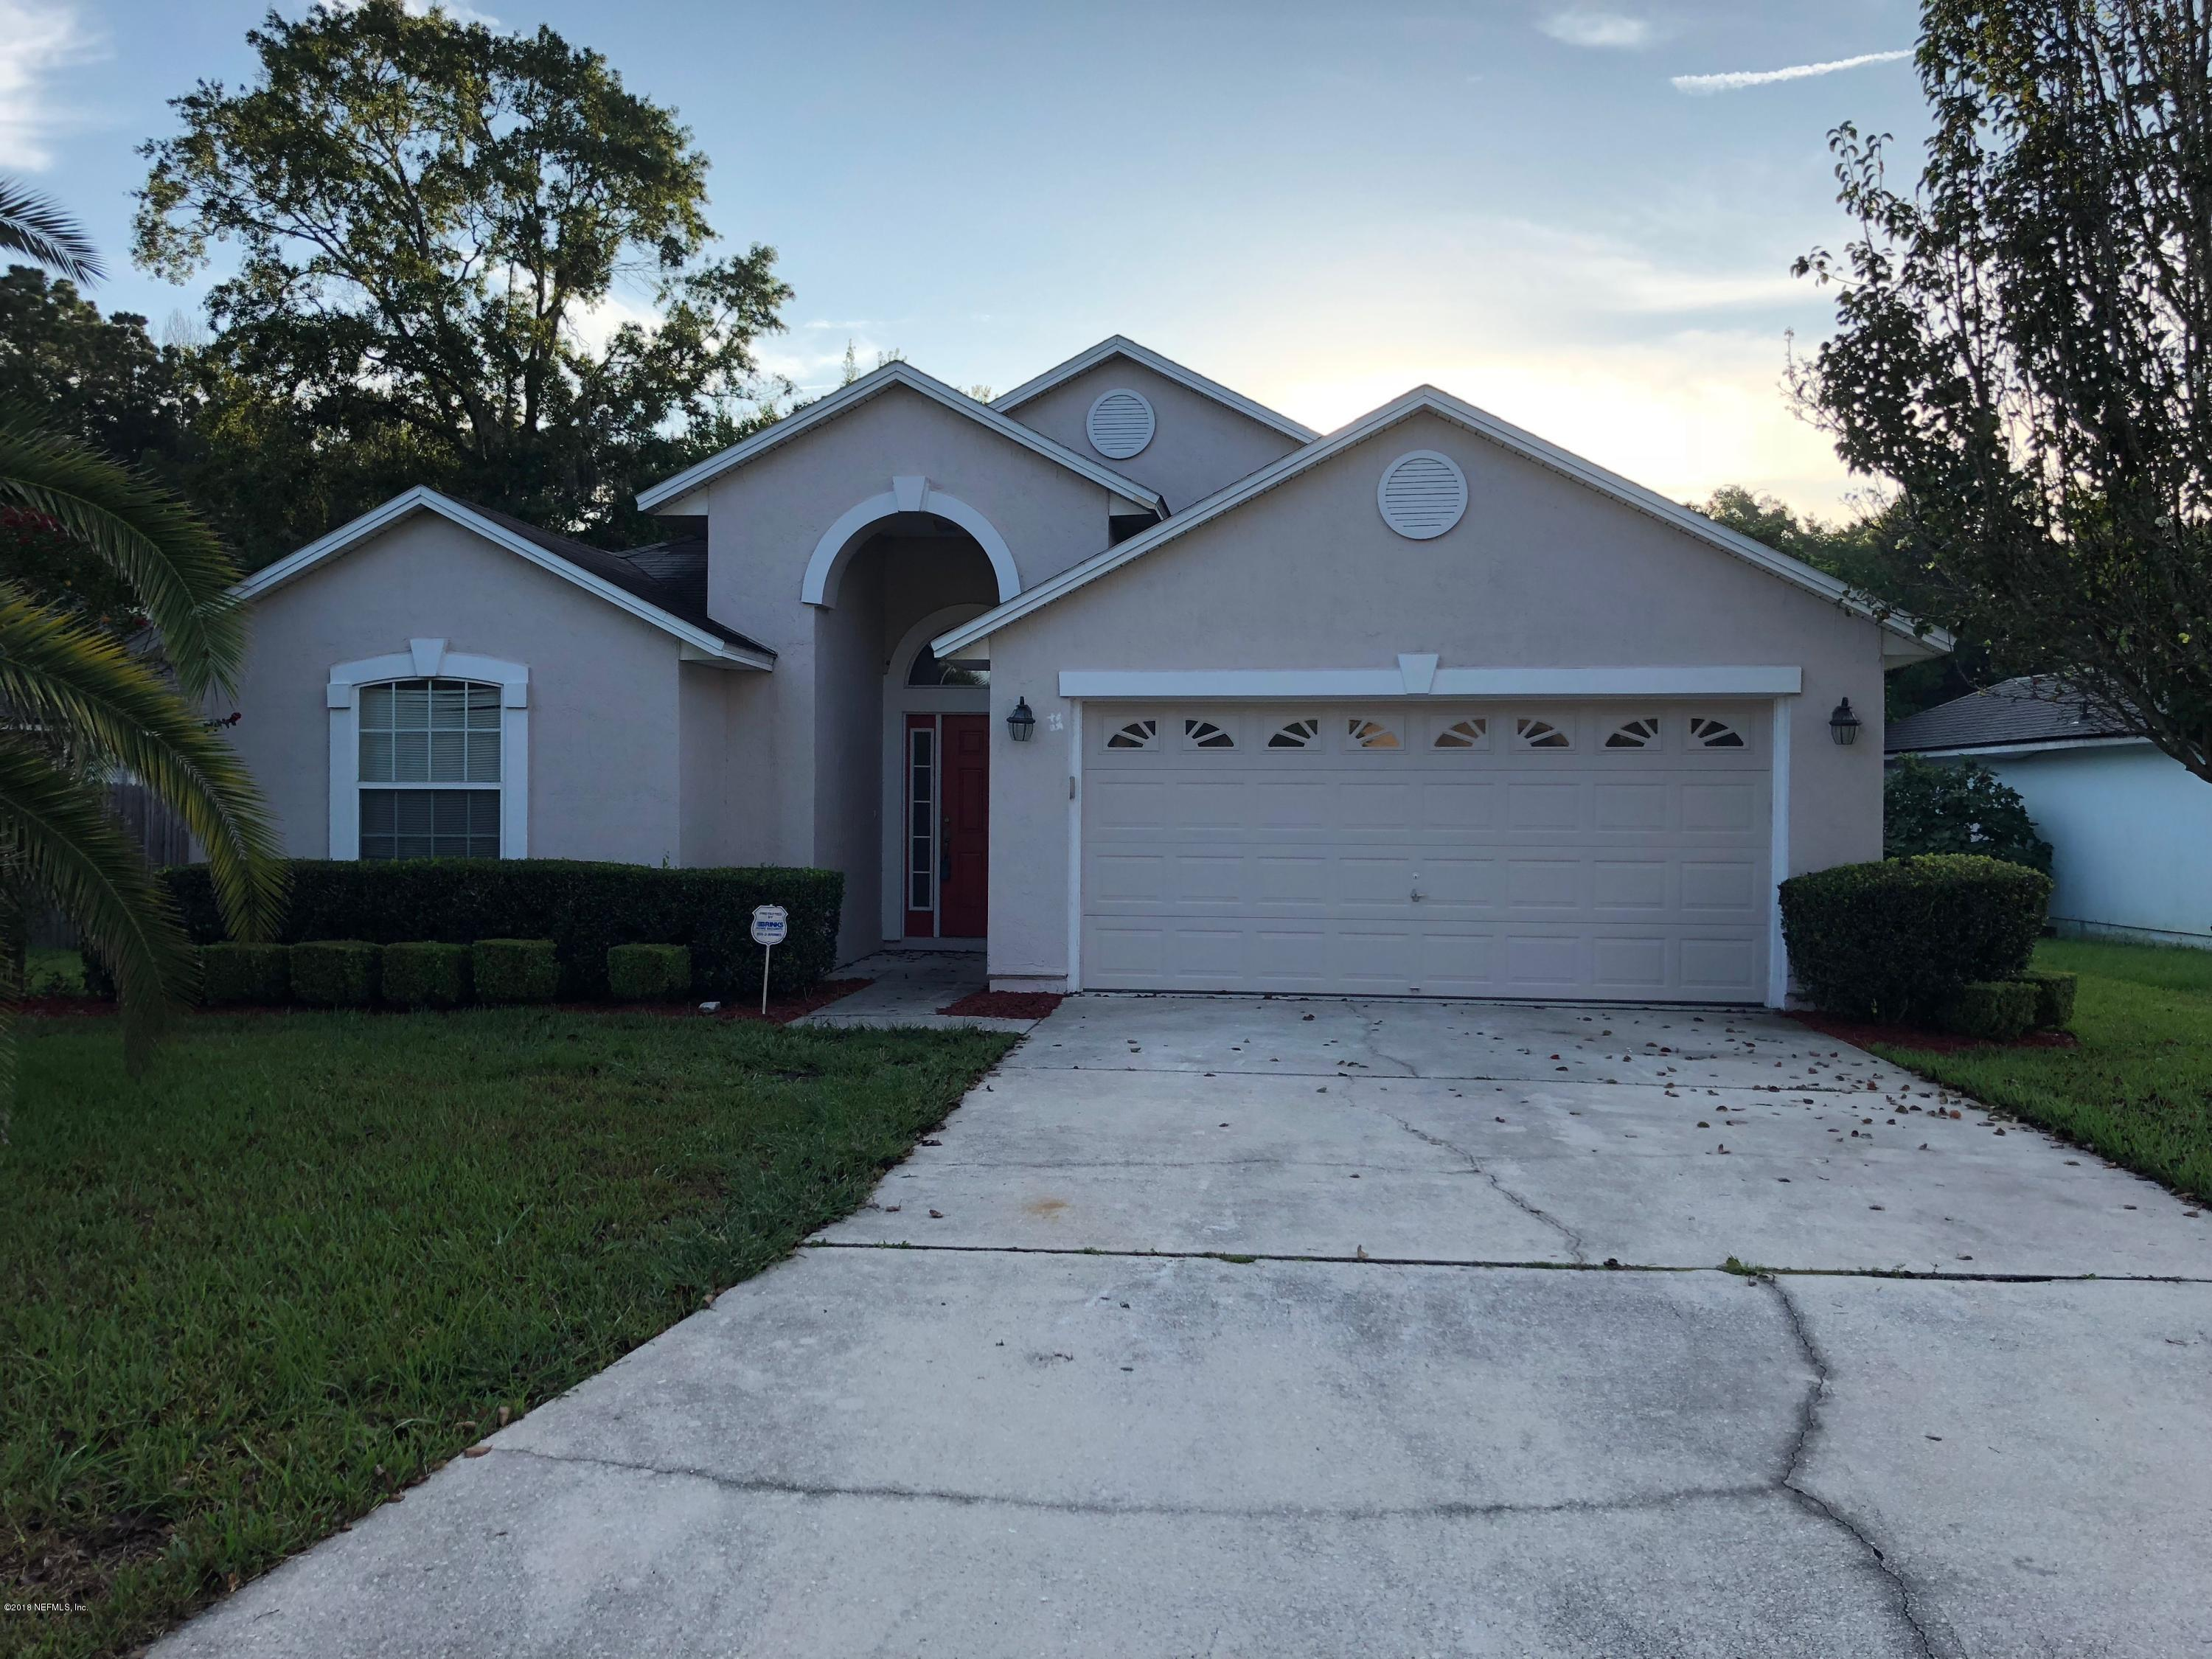 153 DOVER BLUFF, ORANGE PARK, FLORIDA 32073, 3 Bedrooms Bedrooms, ,2 BathroomsBathrooms,Residential - single family,For sale,DOVER BLUFF,954021